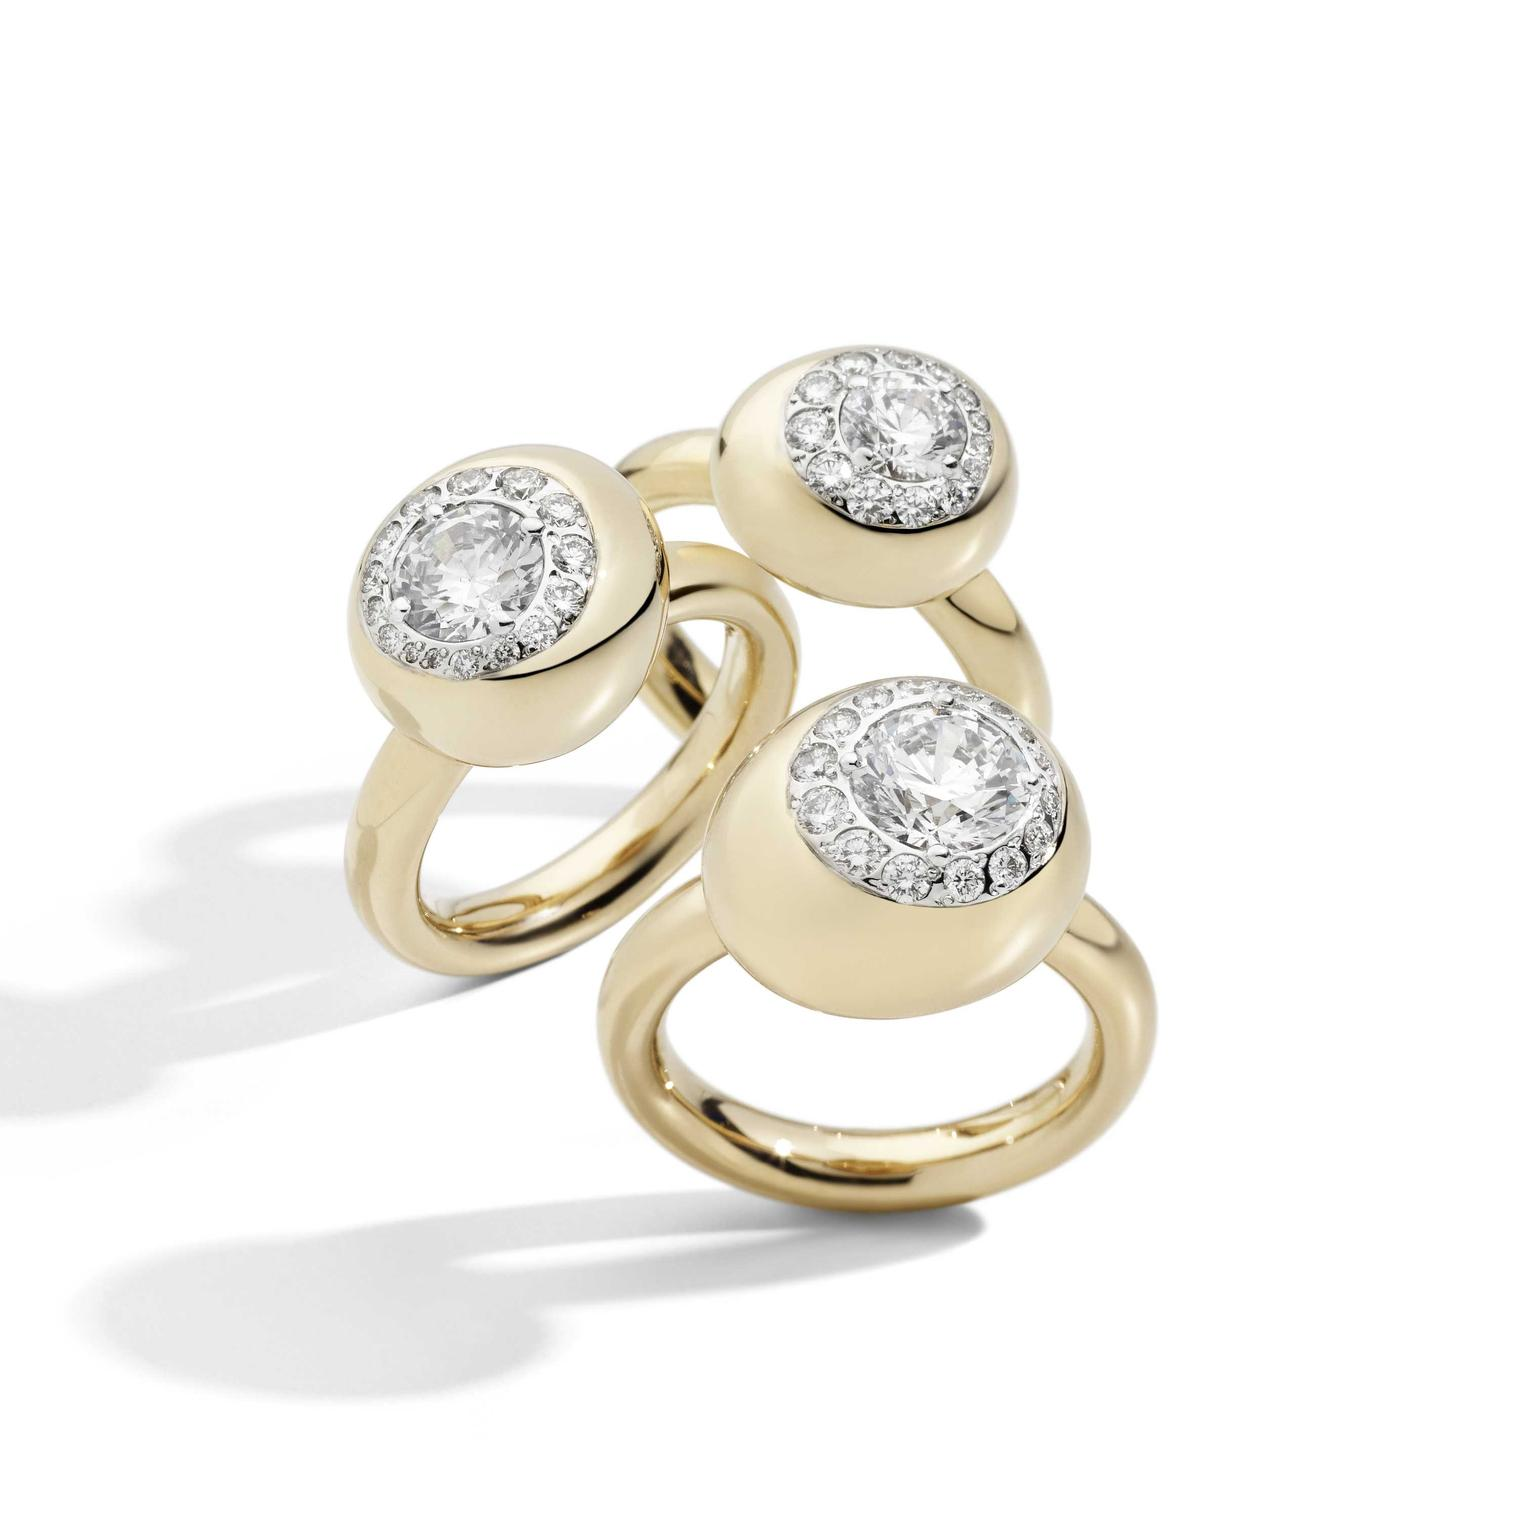 Pomellato Nuvola rose gold diamond rings